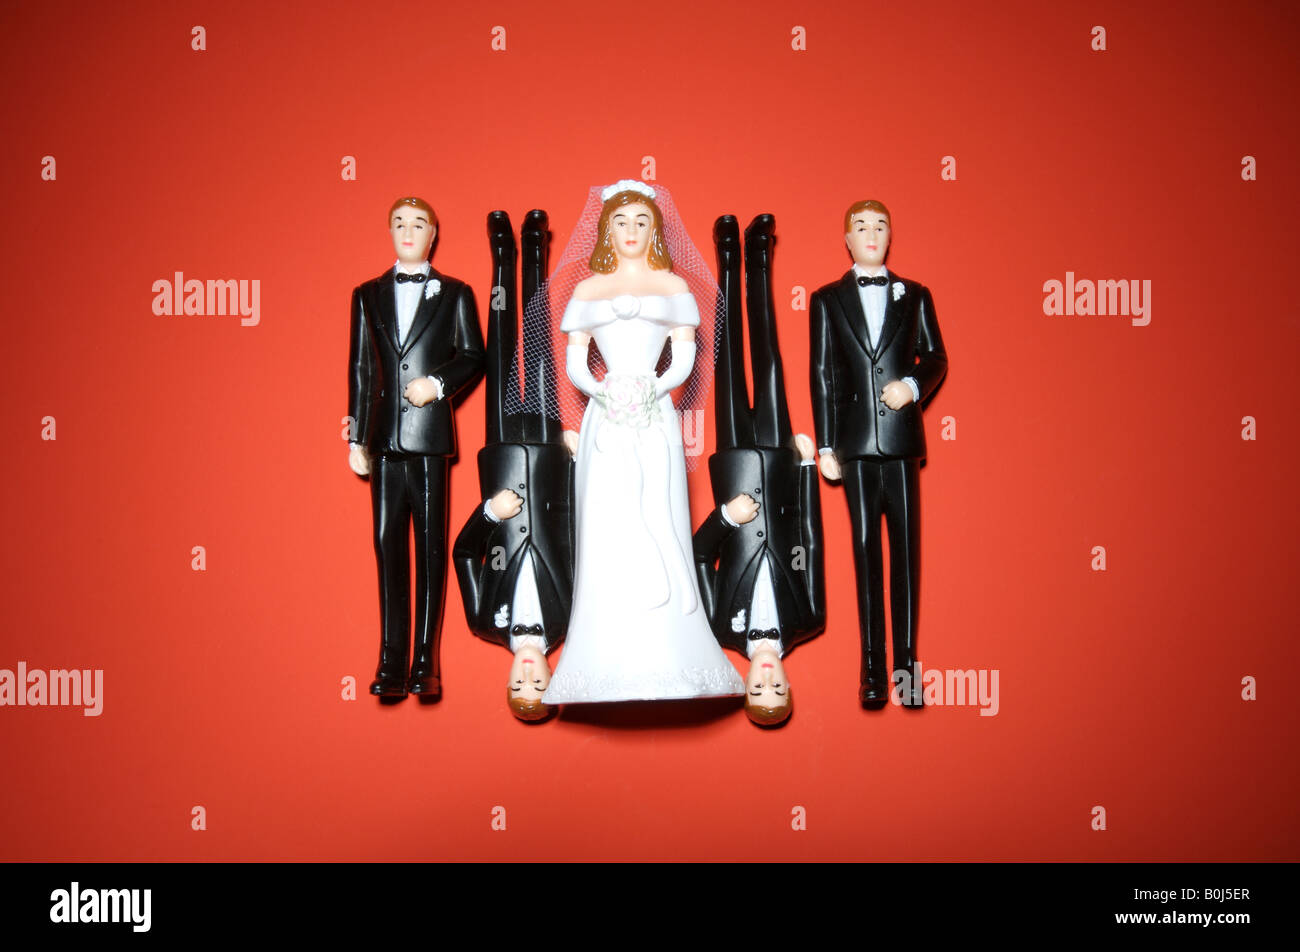 A plastic wedding bride and four men in tuxedos on a red background - Stock Image